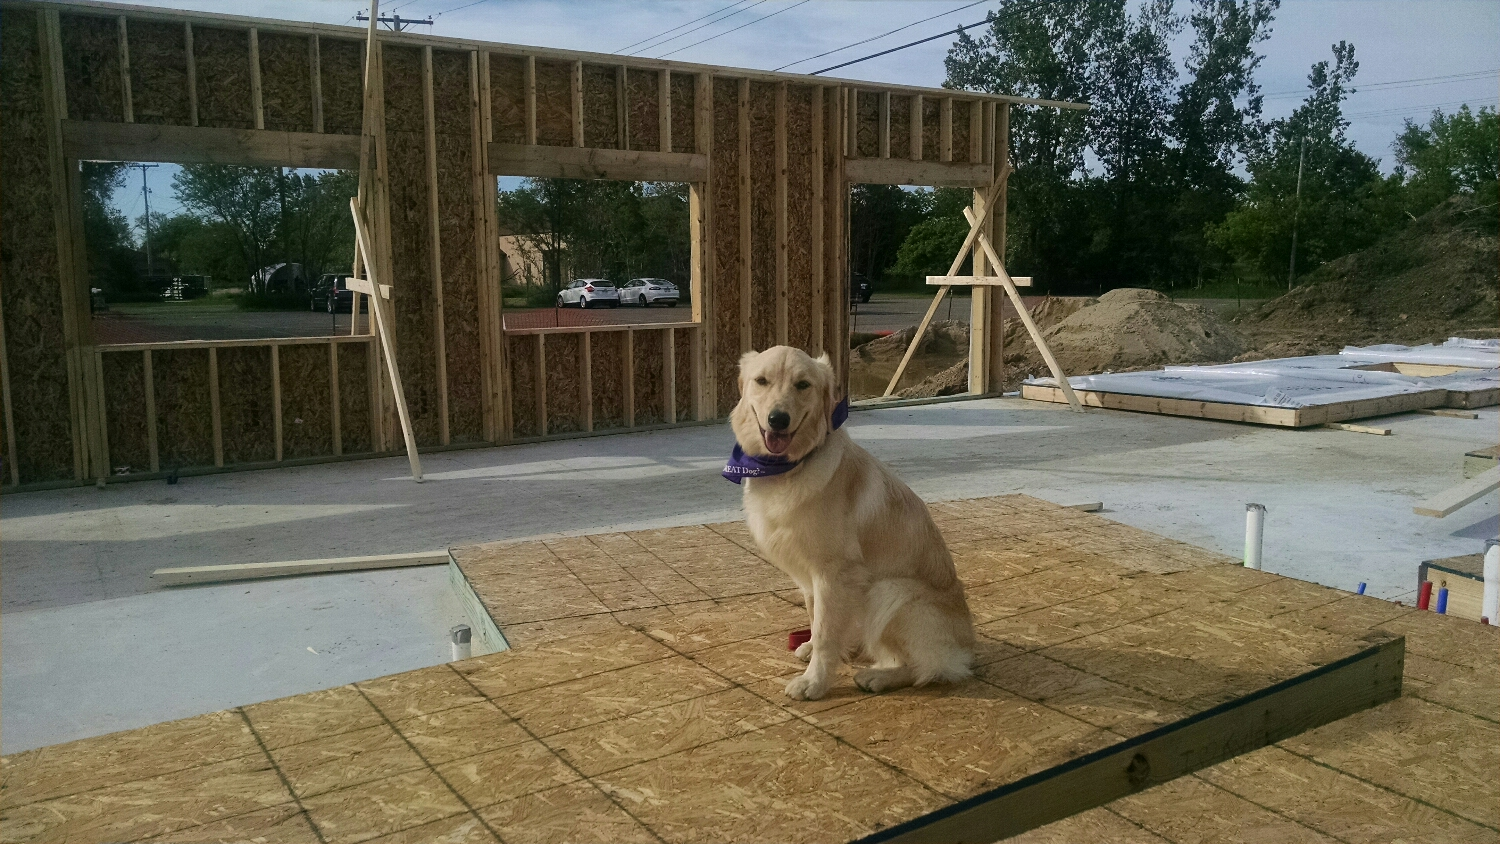 Checking on Canine Academy's new construction